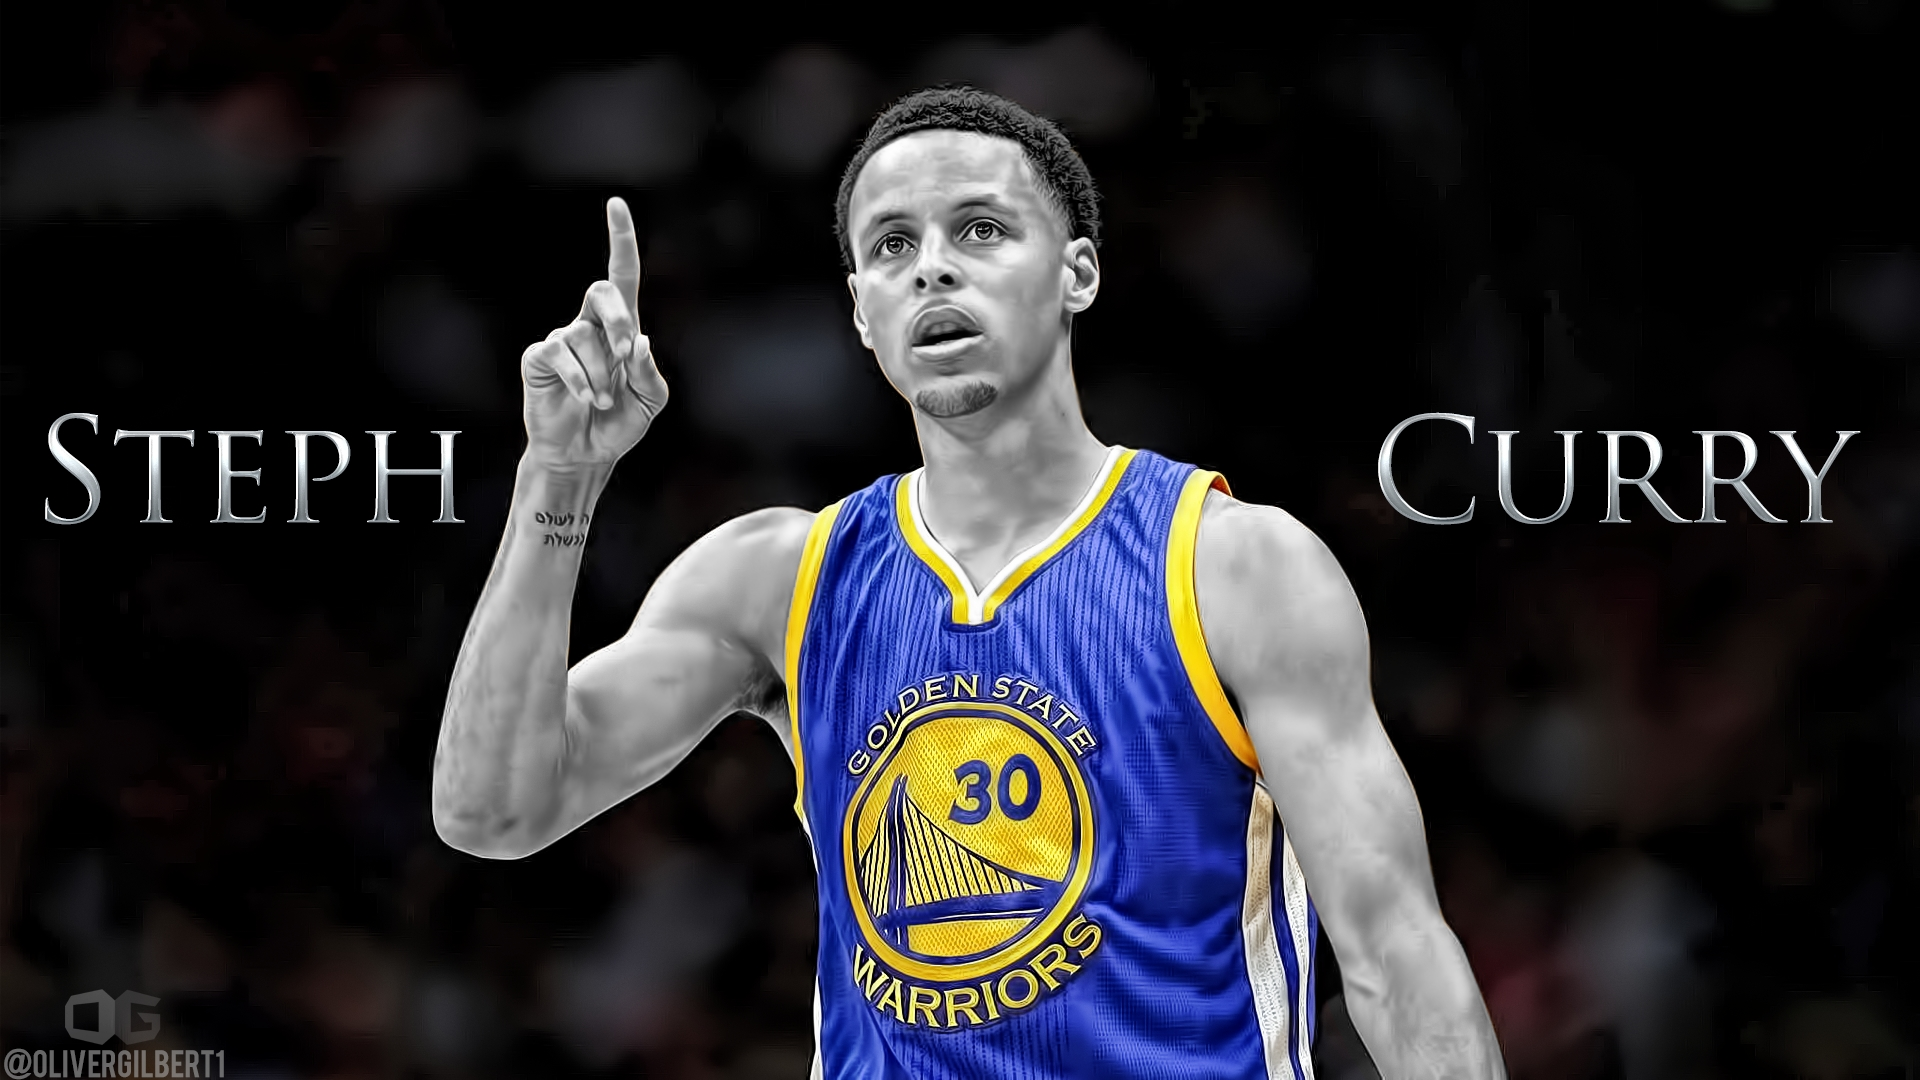 stephen curry full hd fond d'écran and arrière-plan | 1920x1080 | id